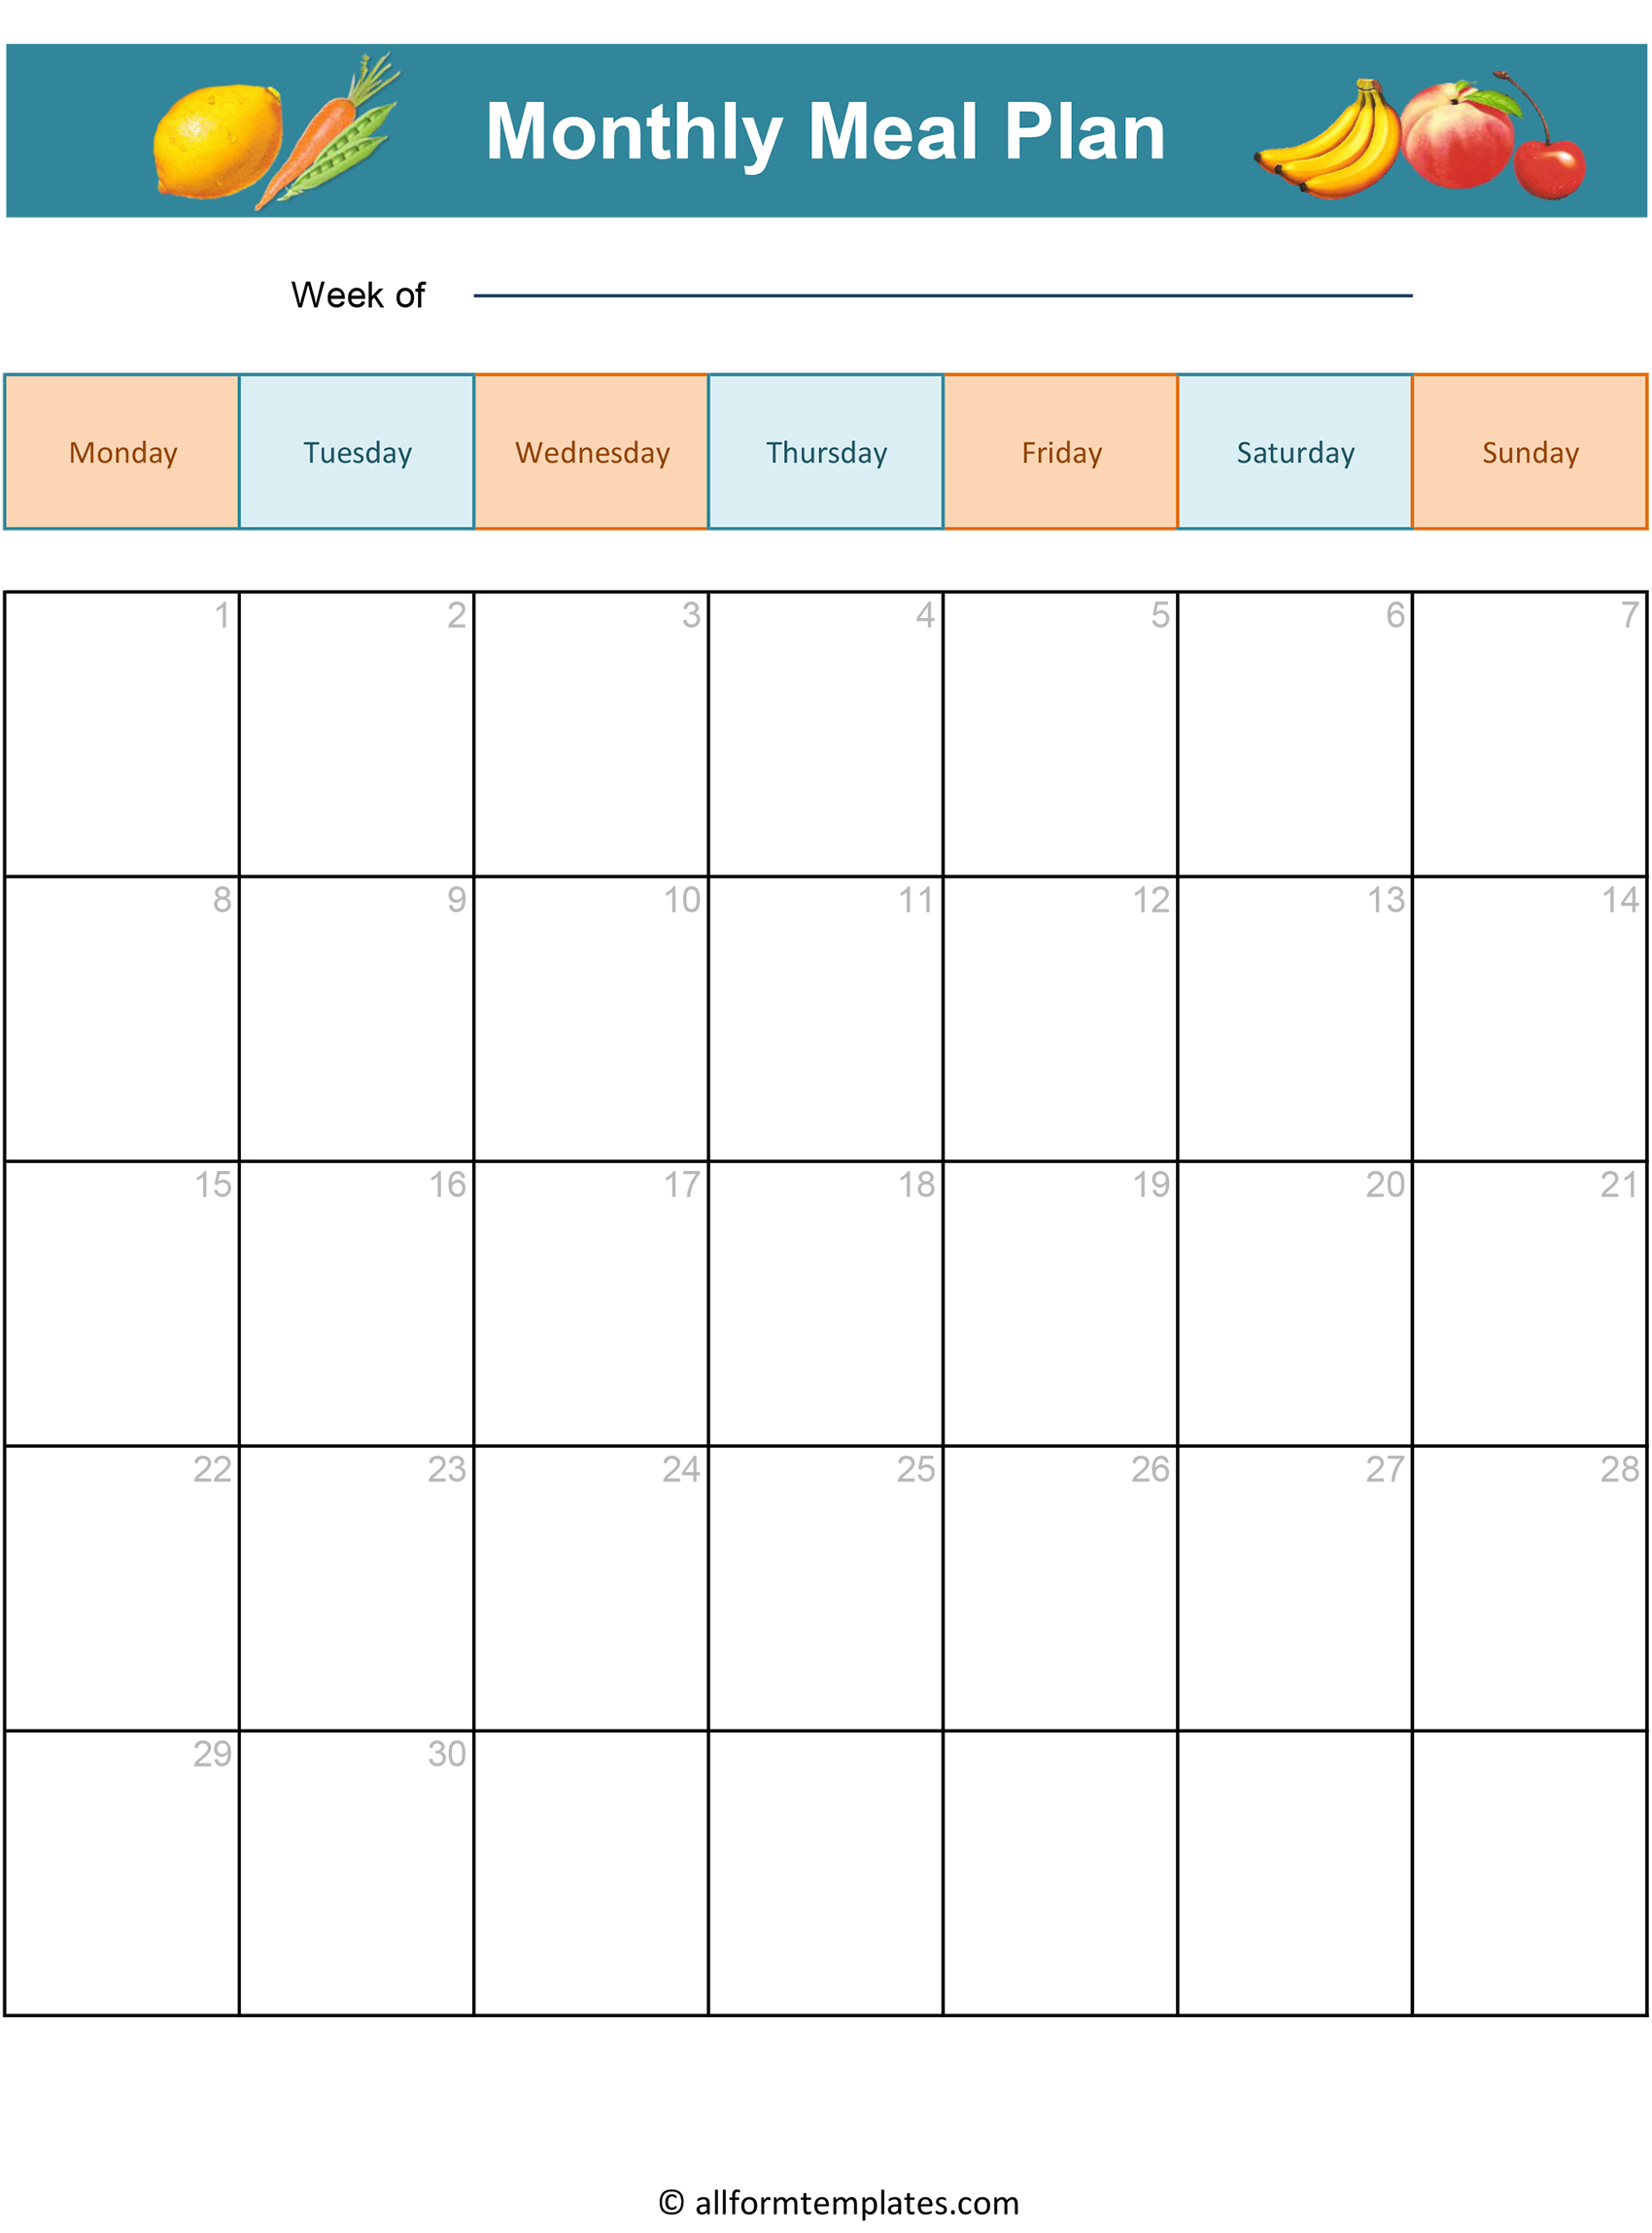 Monthly-Meal-Planner-HD